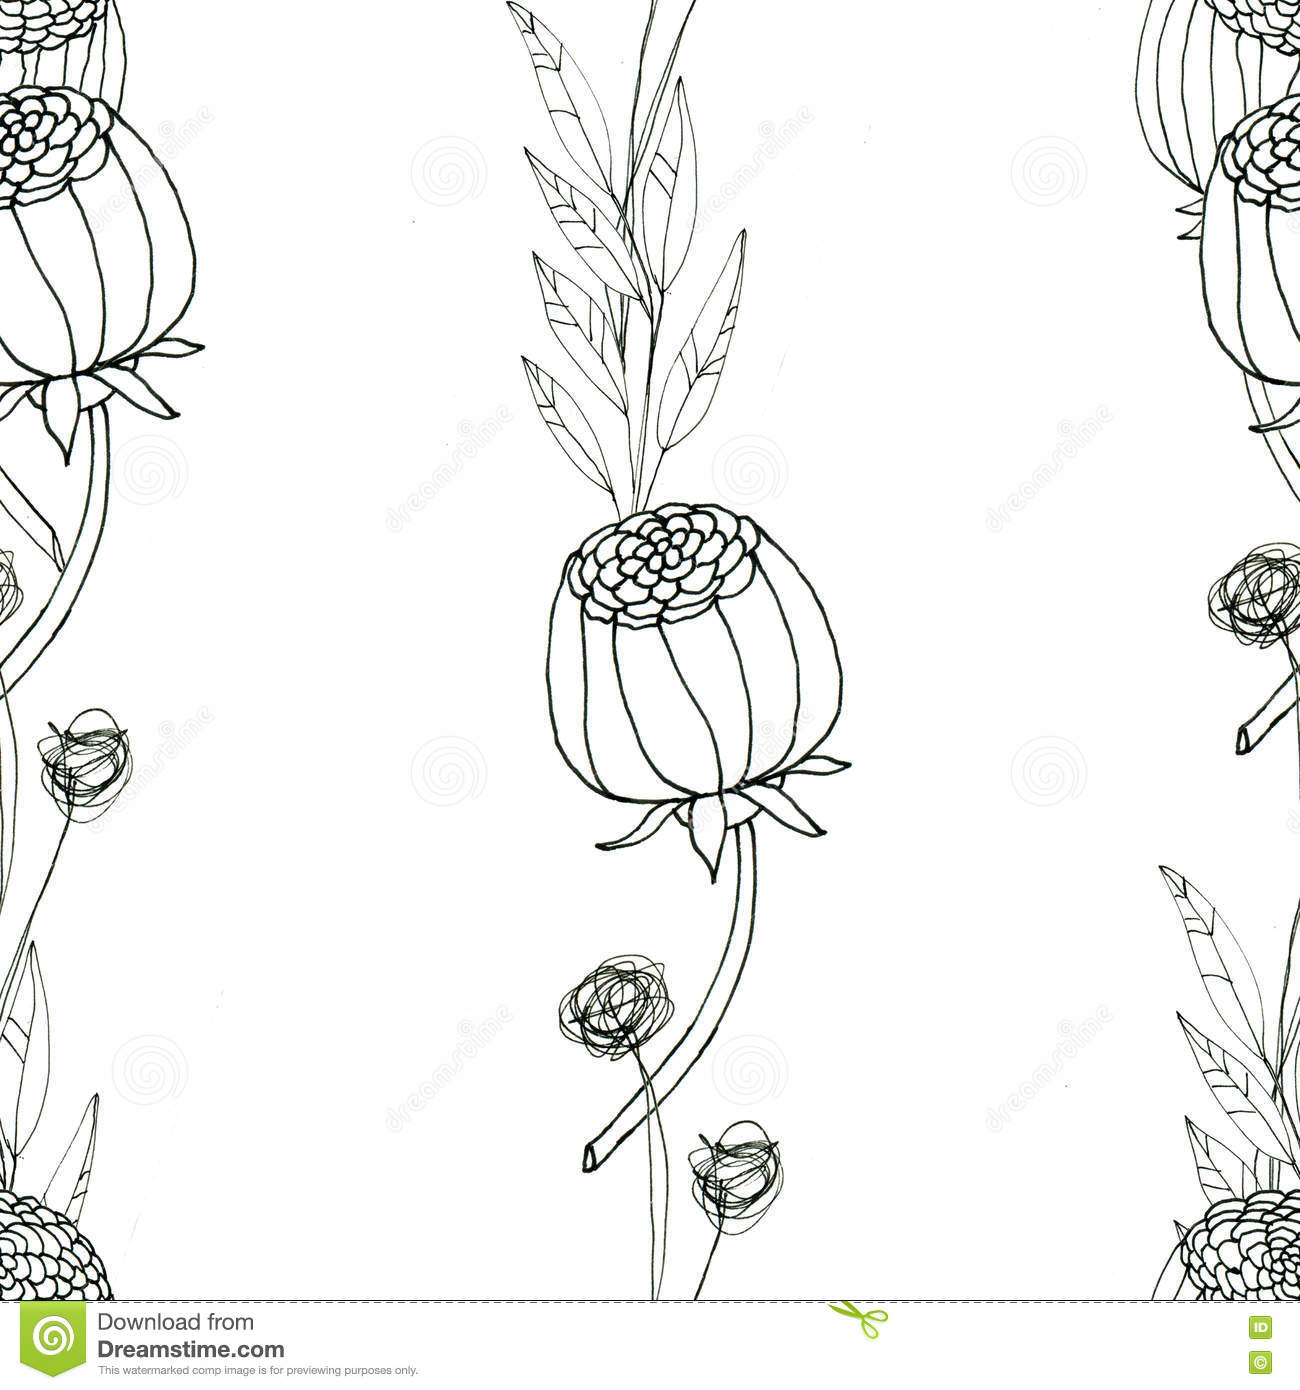 Seamless Floral With Abstract Black And White Flowers Stock